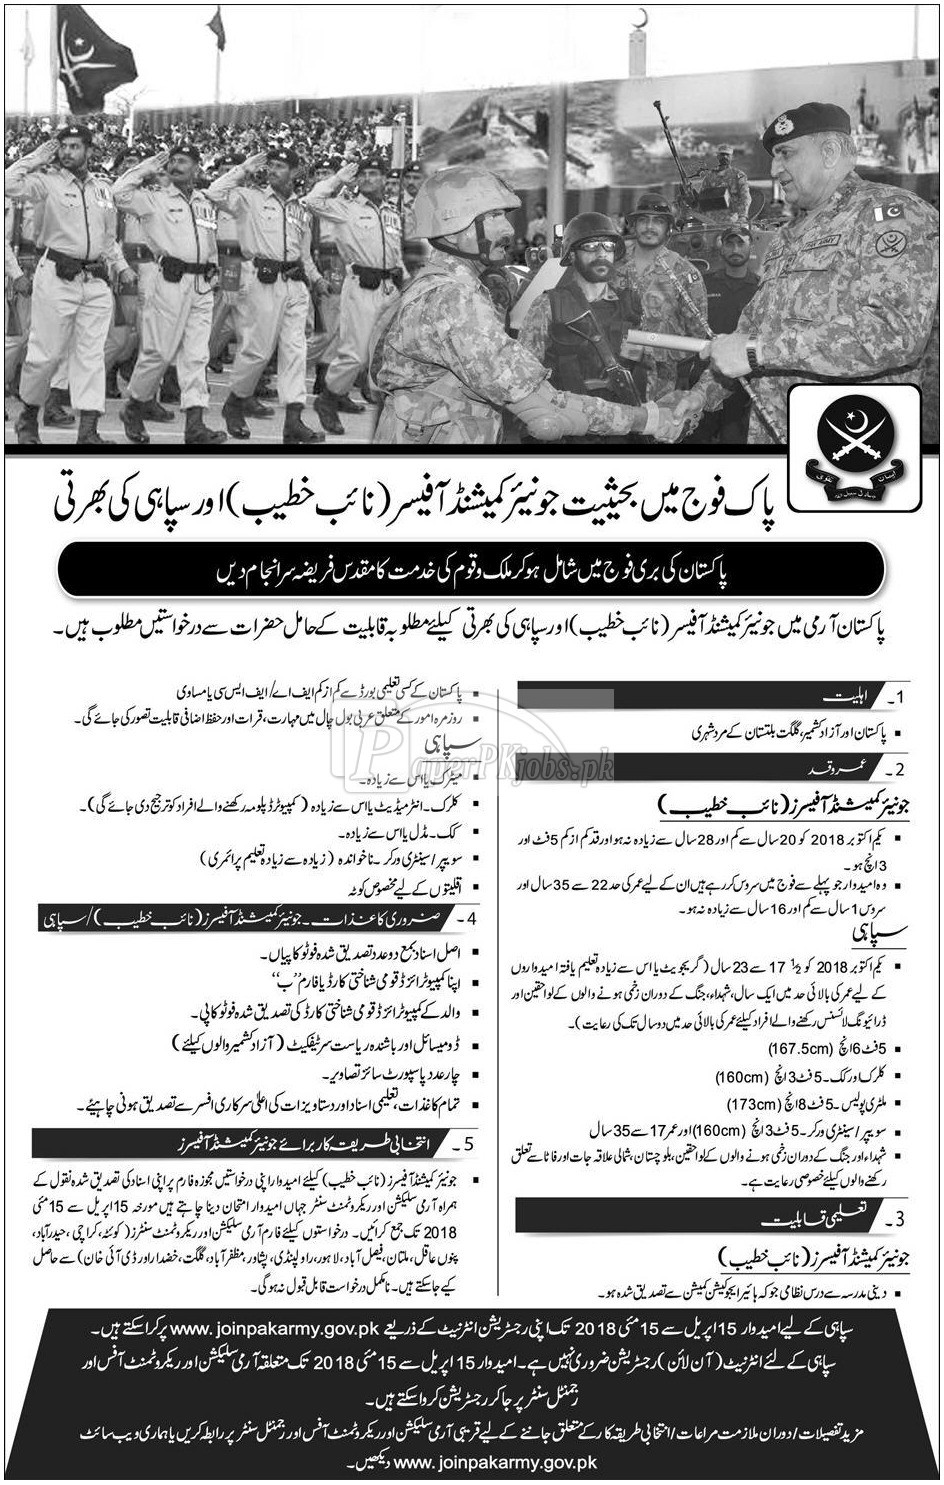 Join Pak Army as Junior Commissioned Officer & Soldier 2018